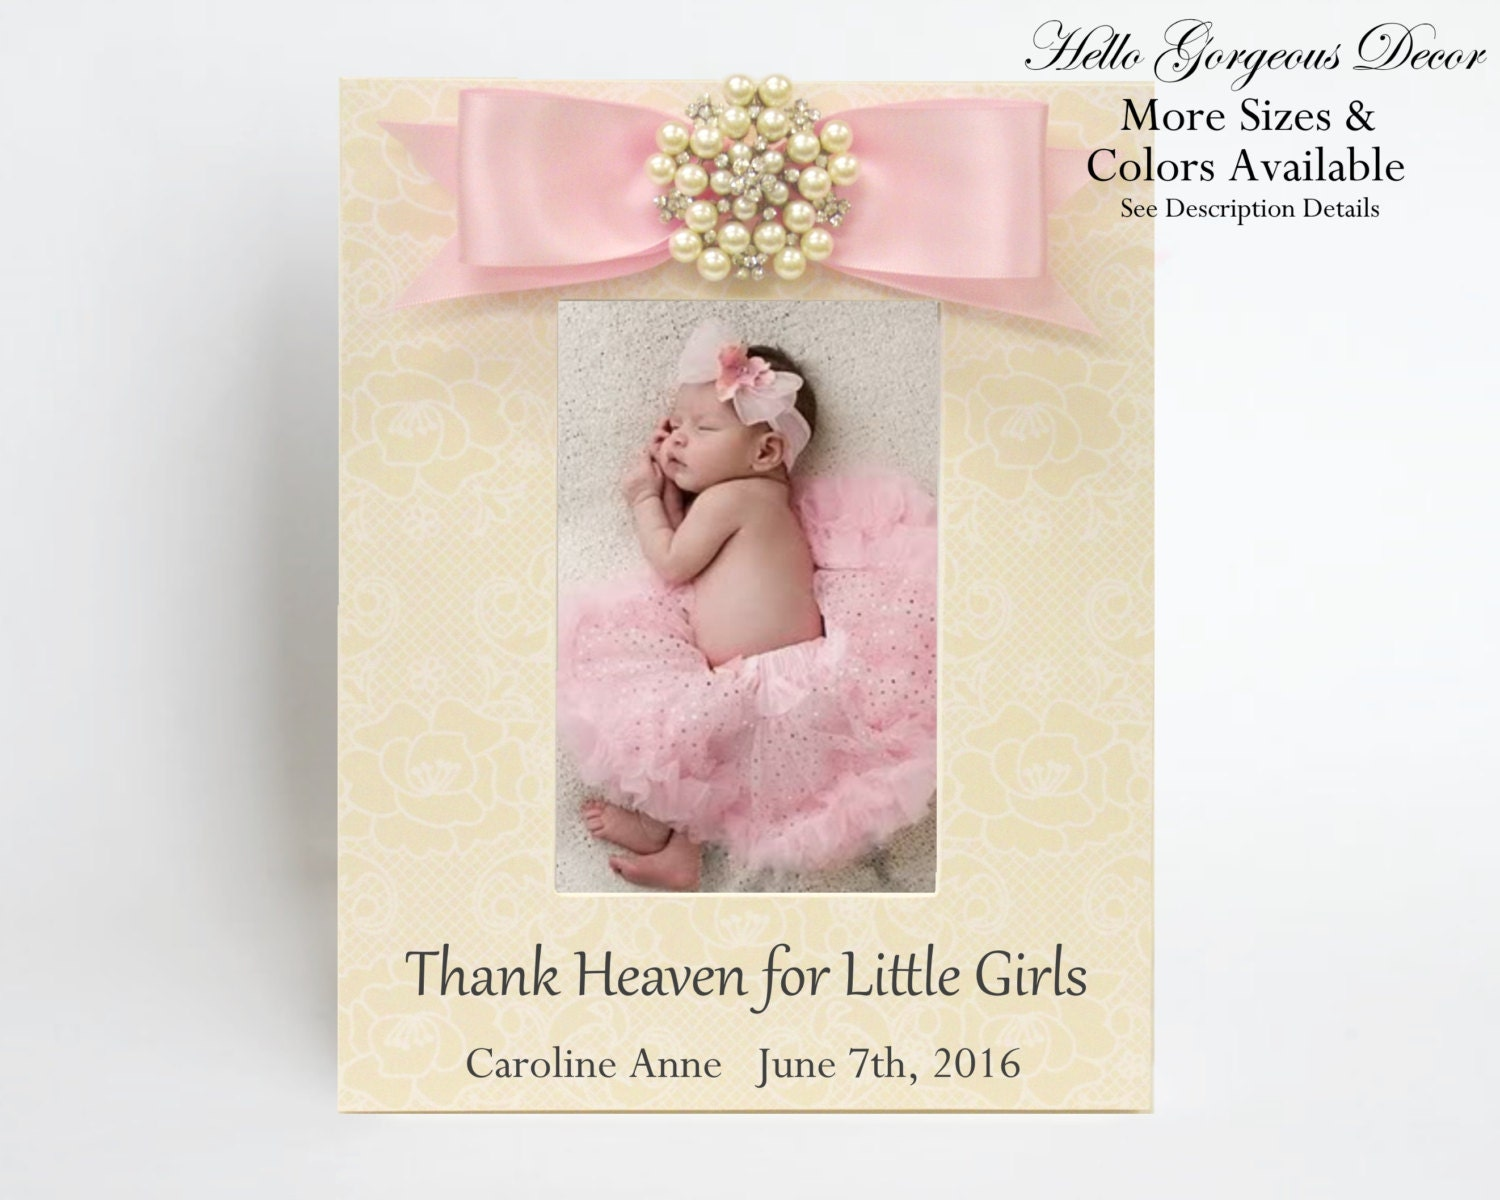 Baby Picture Frame Gift For New Baby Girl Personalized Baby Shower Gift  Newborn Photo Frame Pink Girl Nursery Decor Push Present Gift Ideas From ...